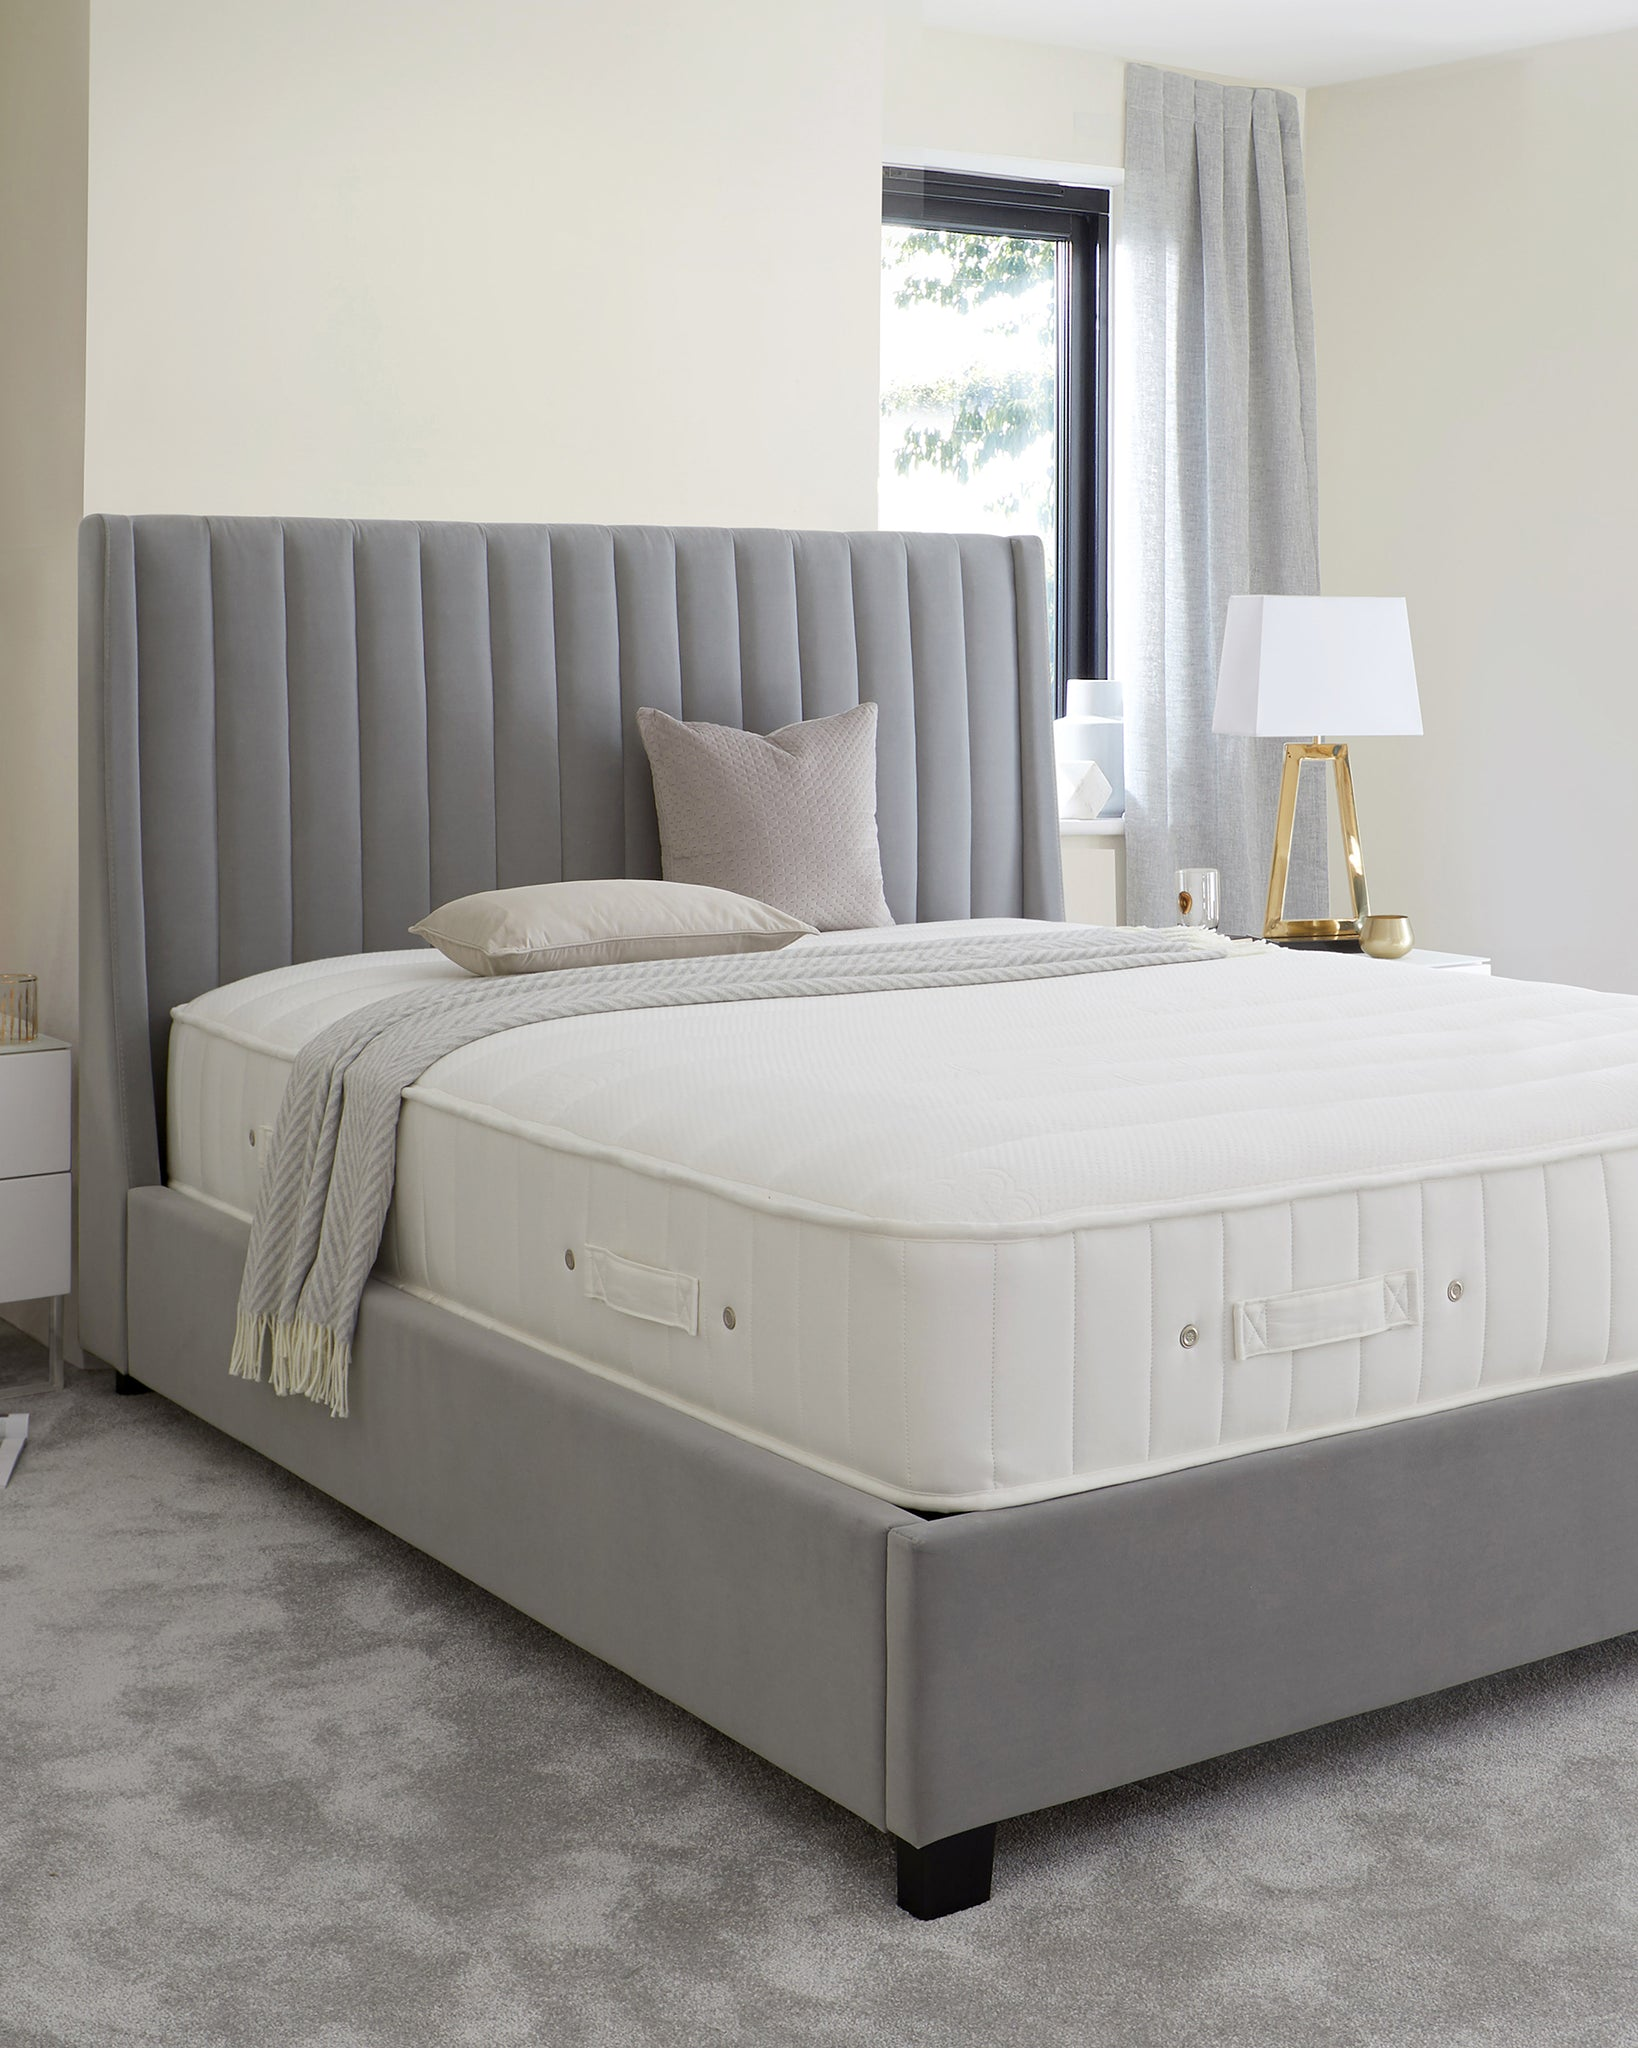 Sumptuous Luxury Quilted 1400 Pocket Spring Super King Mattress